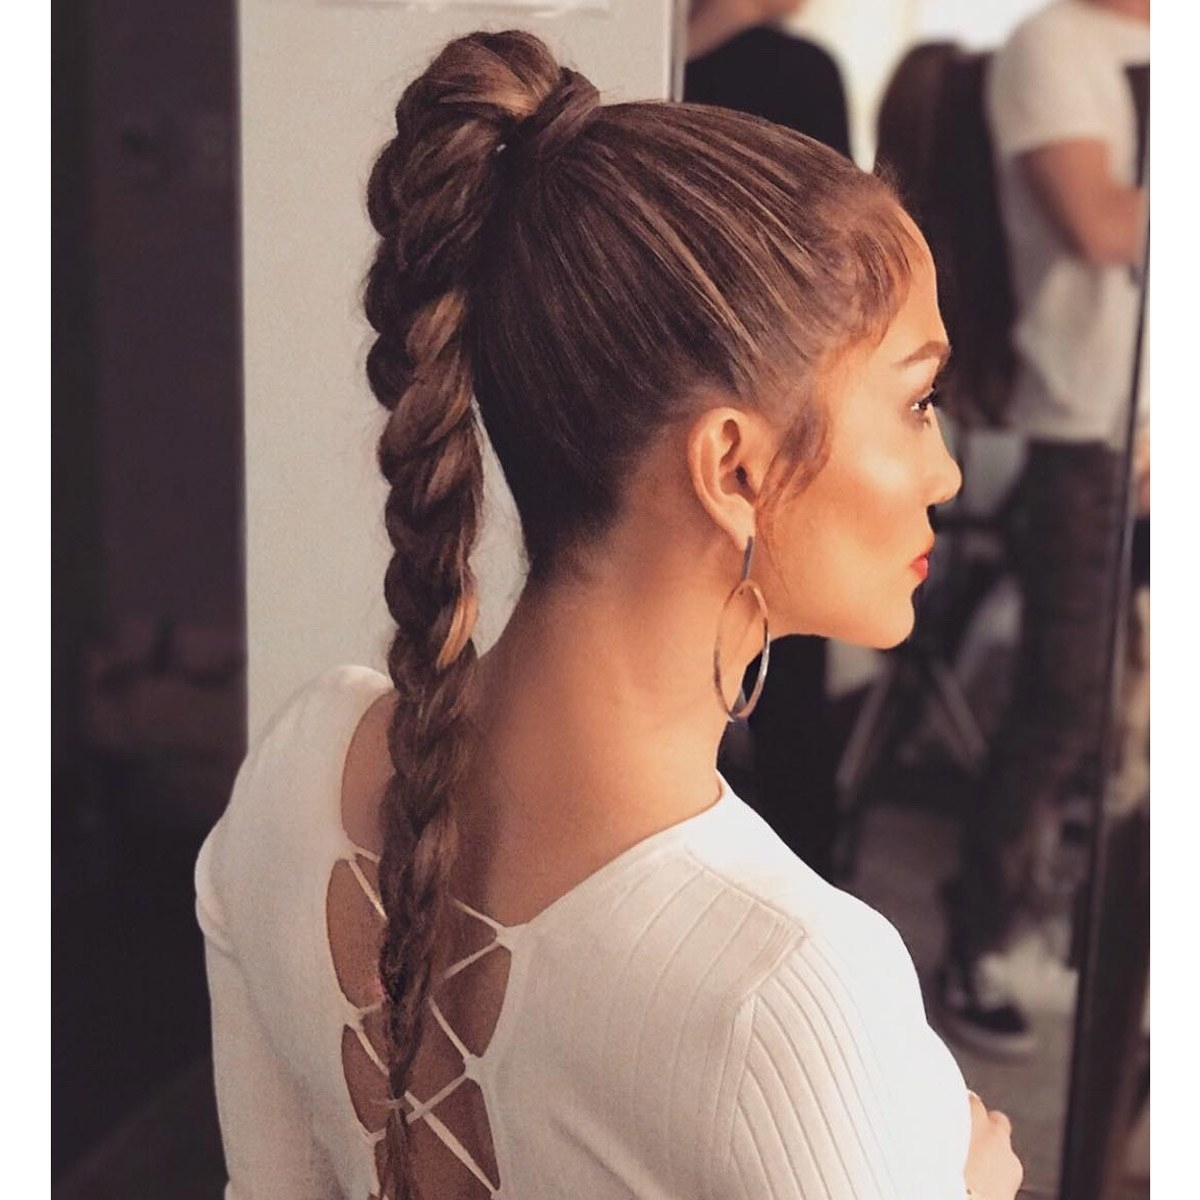 2018 Side Braided Sleek Pony Hairstyles Within 27 Ponytail Hairstyles For 2018: Best Ponytail Styles (View 2 of 20)